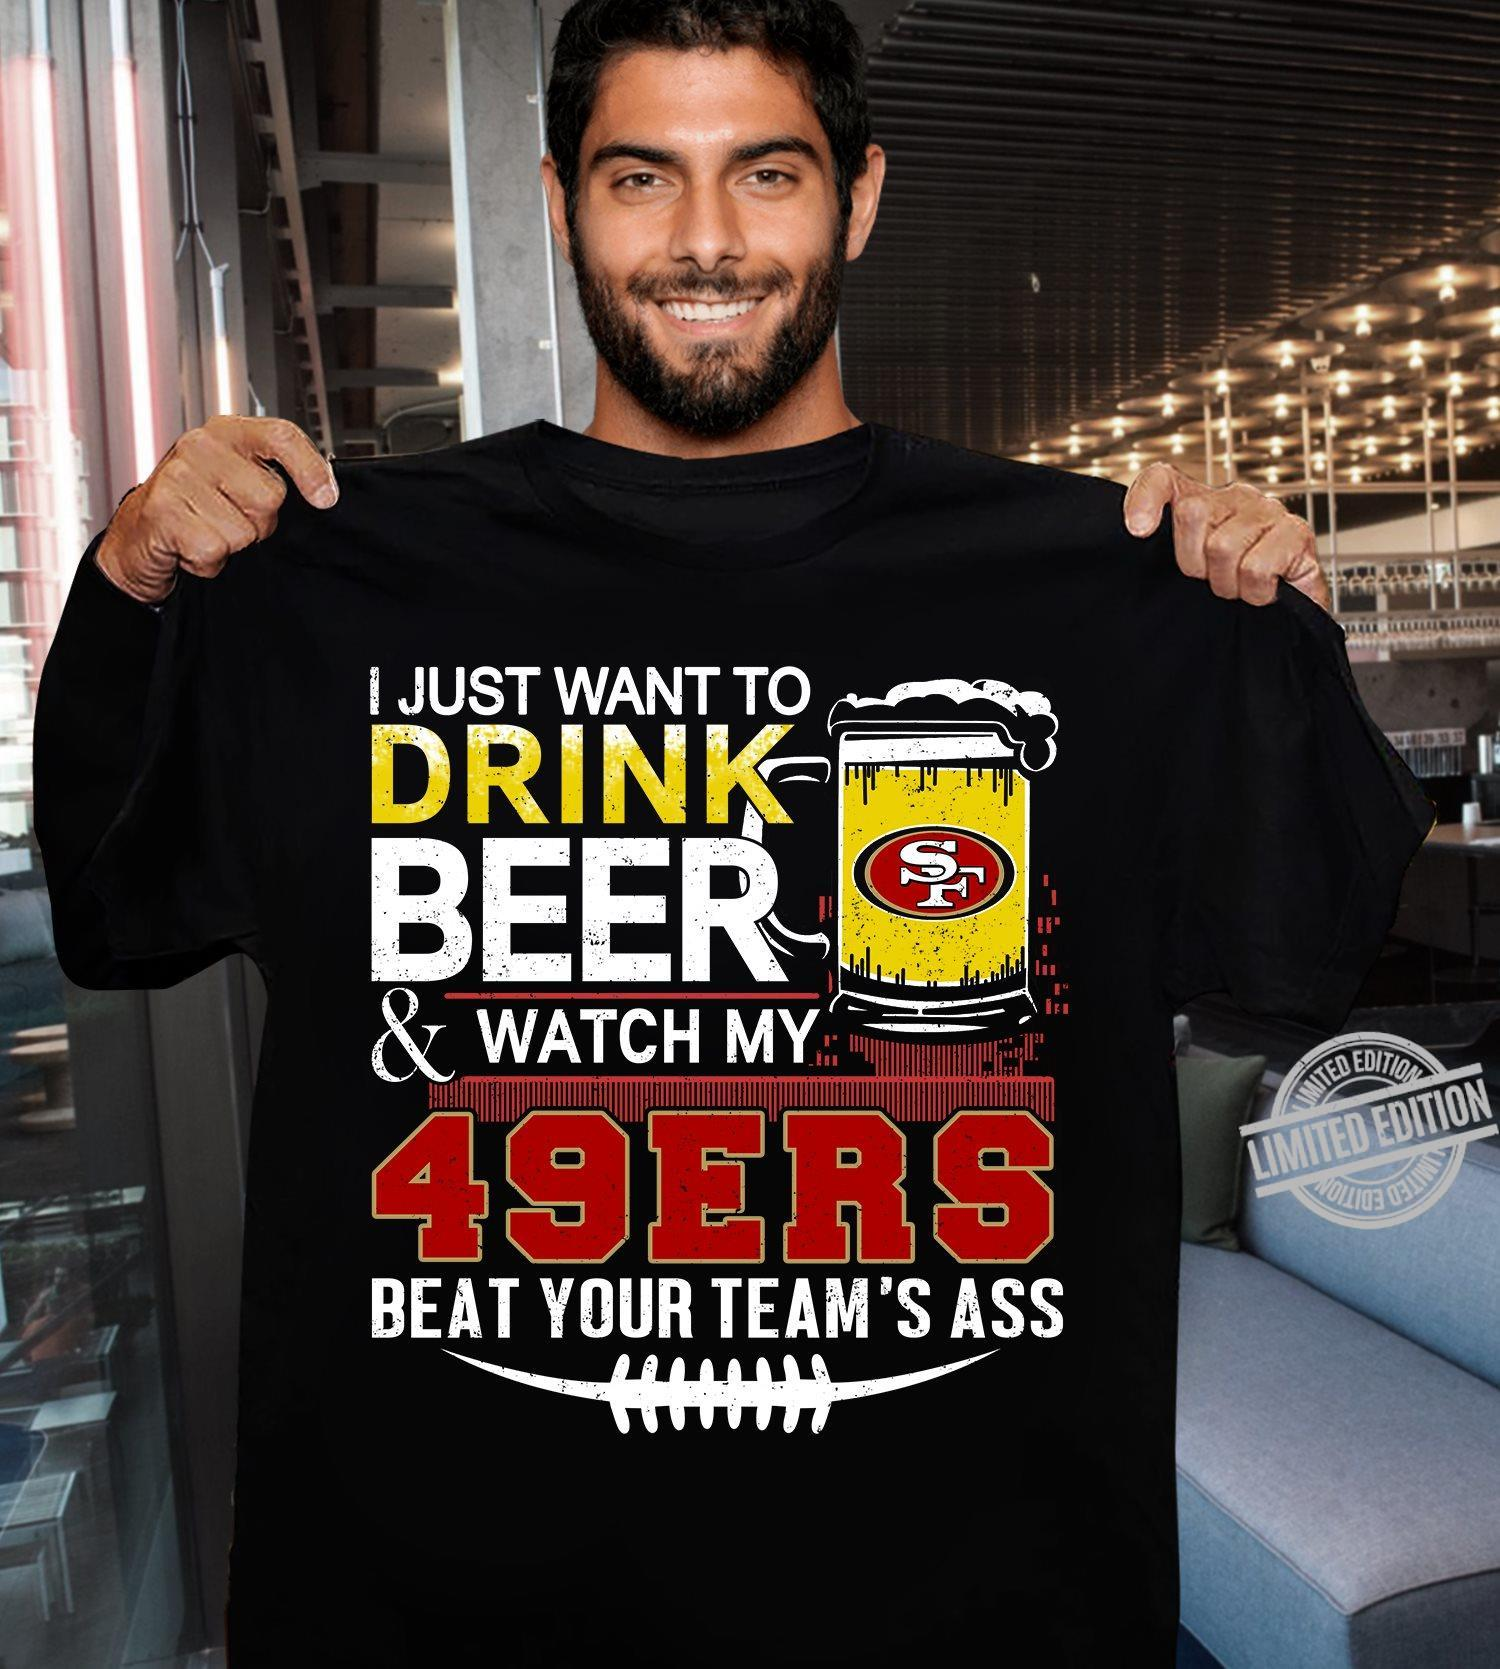 I Just Want To Drink Beer & Watch My 49ers Beat Your Team's Ass Shirt